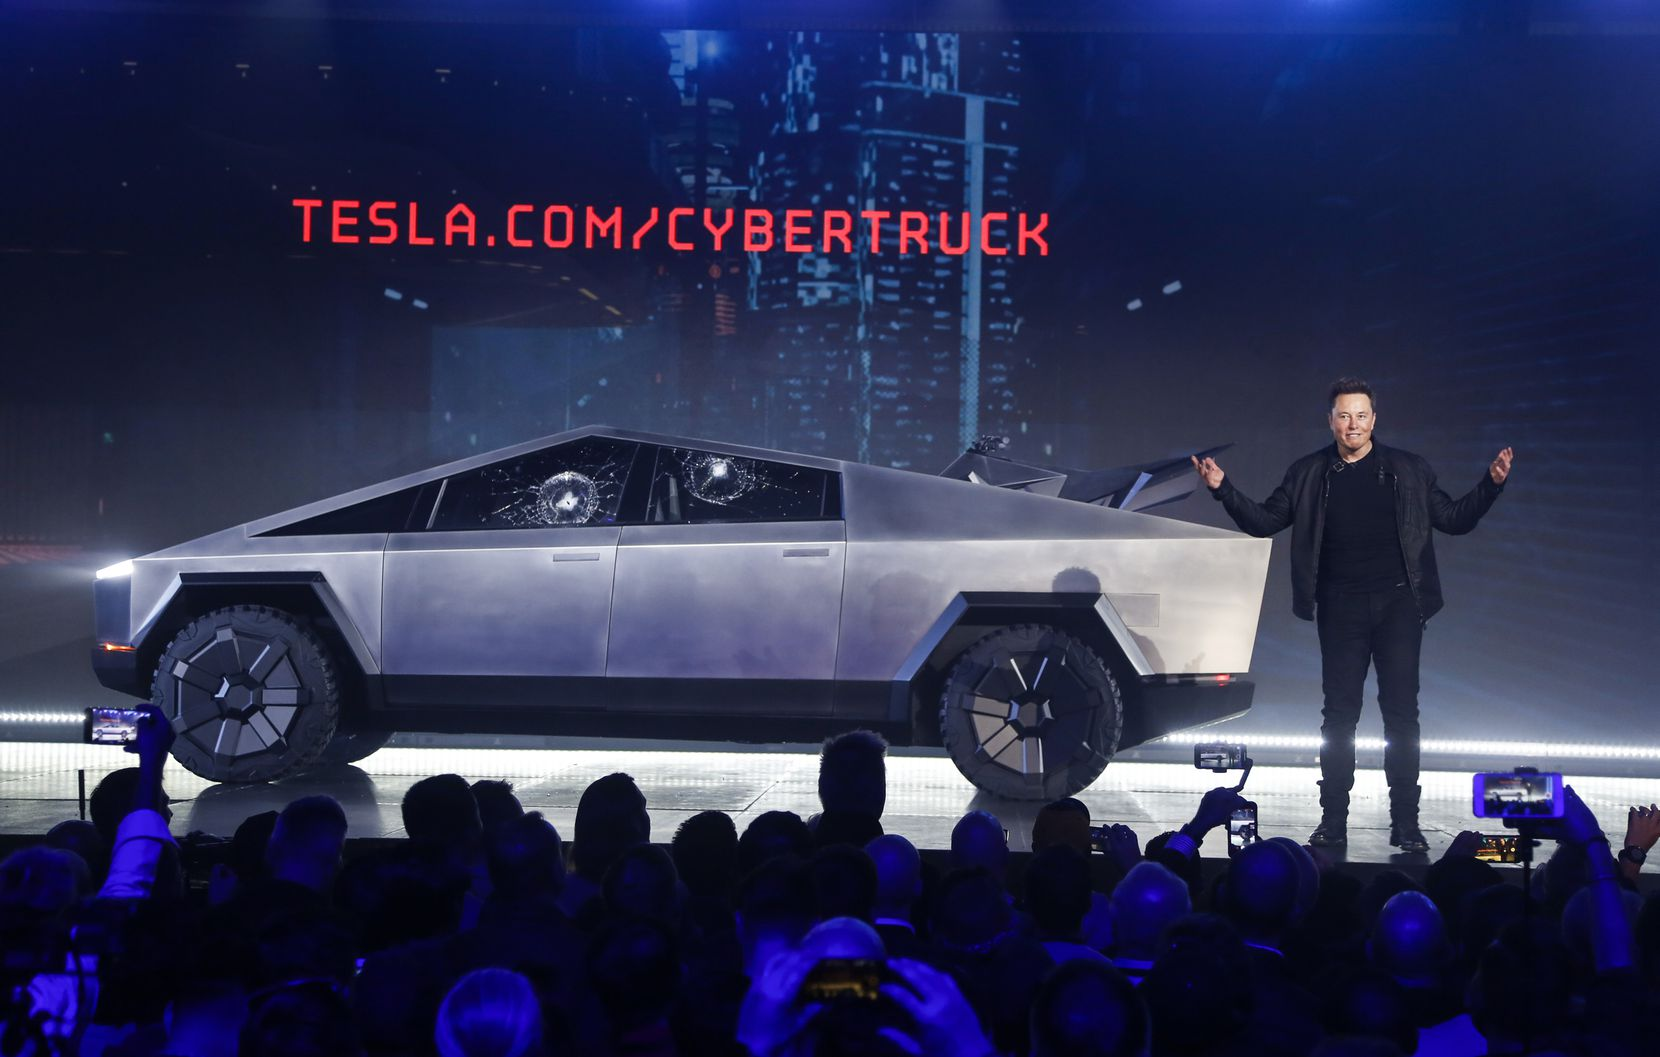 Tesla CEO Elon Musk introduced the Cybertruck at Tesla's design studio in November 2019  in Hawthorne, Calif.